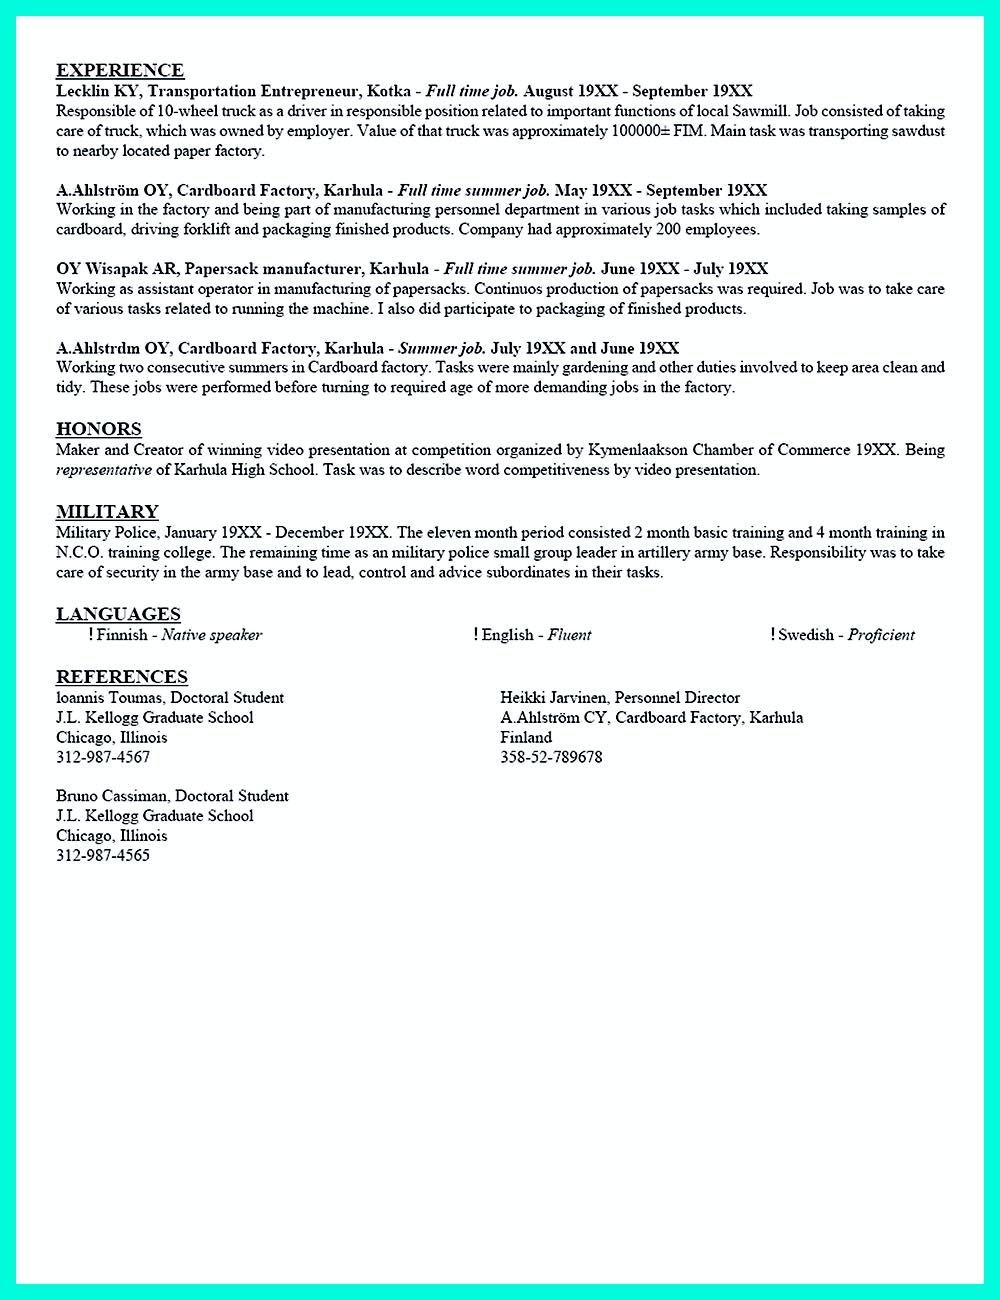 Pin By Agnes On Cv Job Resume Format Job Resume Sample